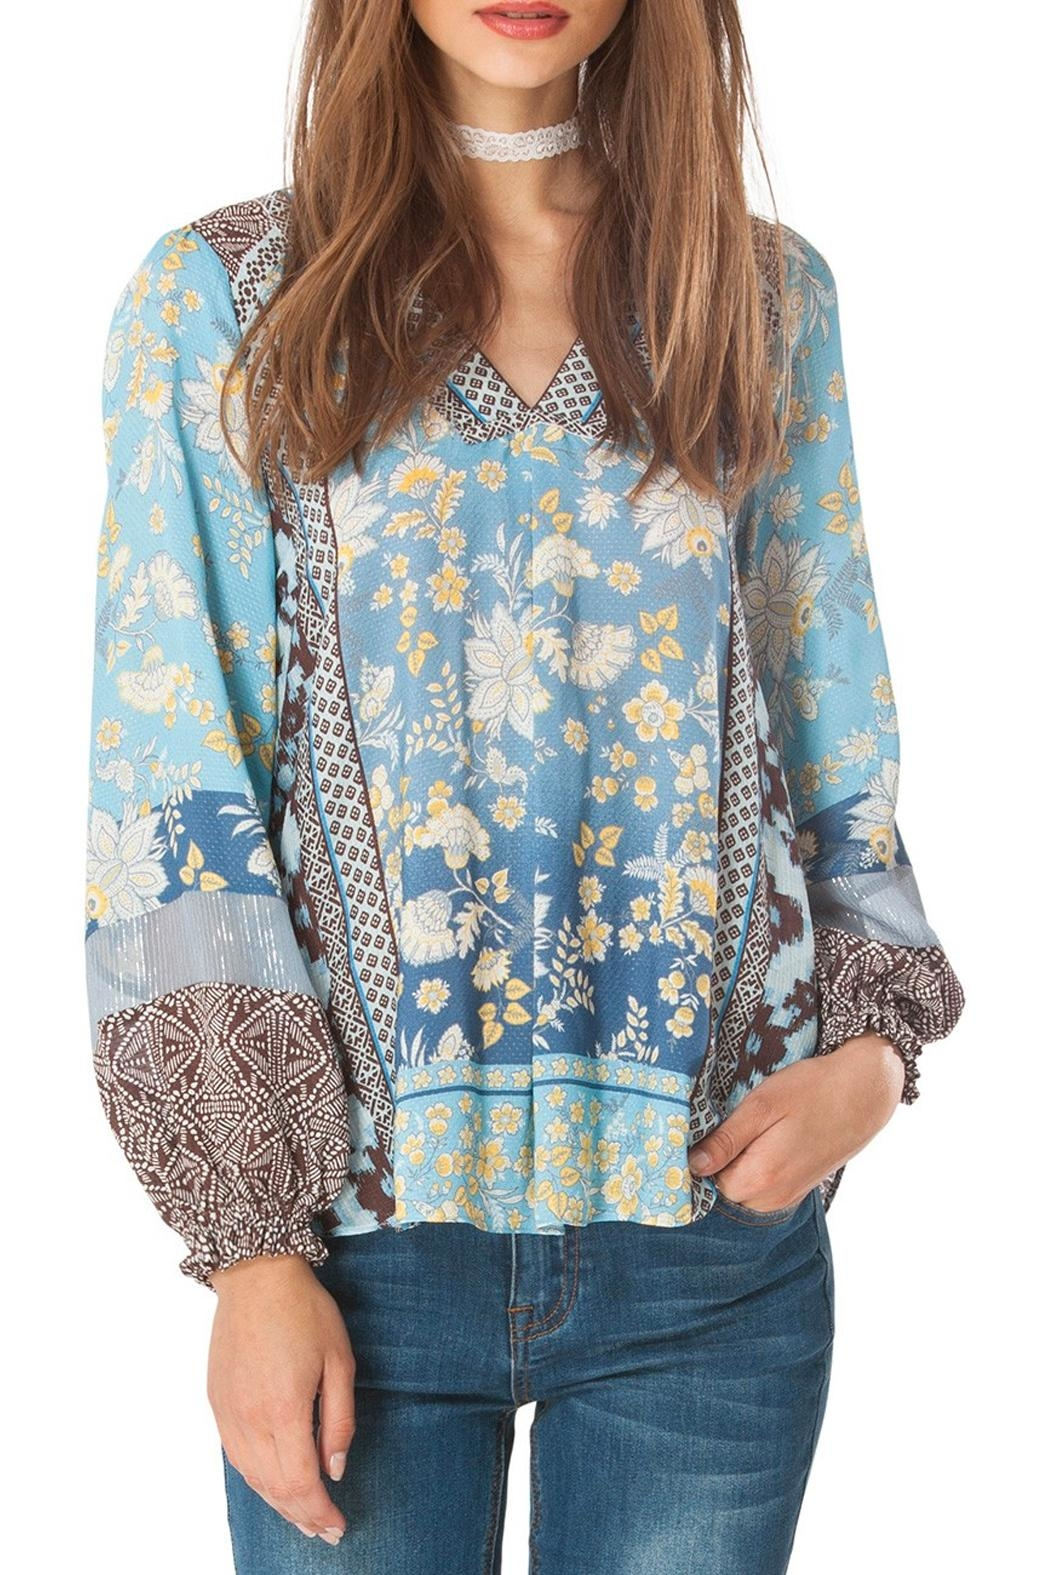 Hale Bob Athena Floral Tunic Top - Front Cropped Image